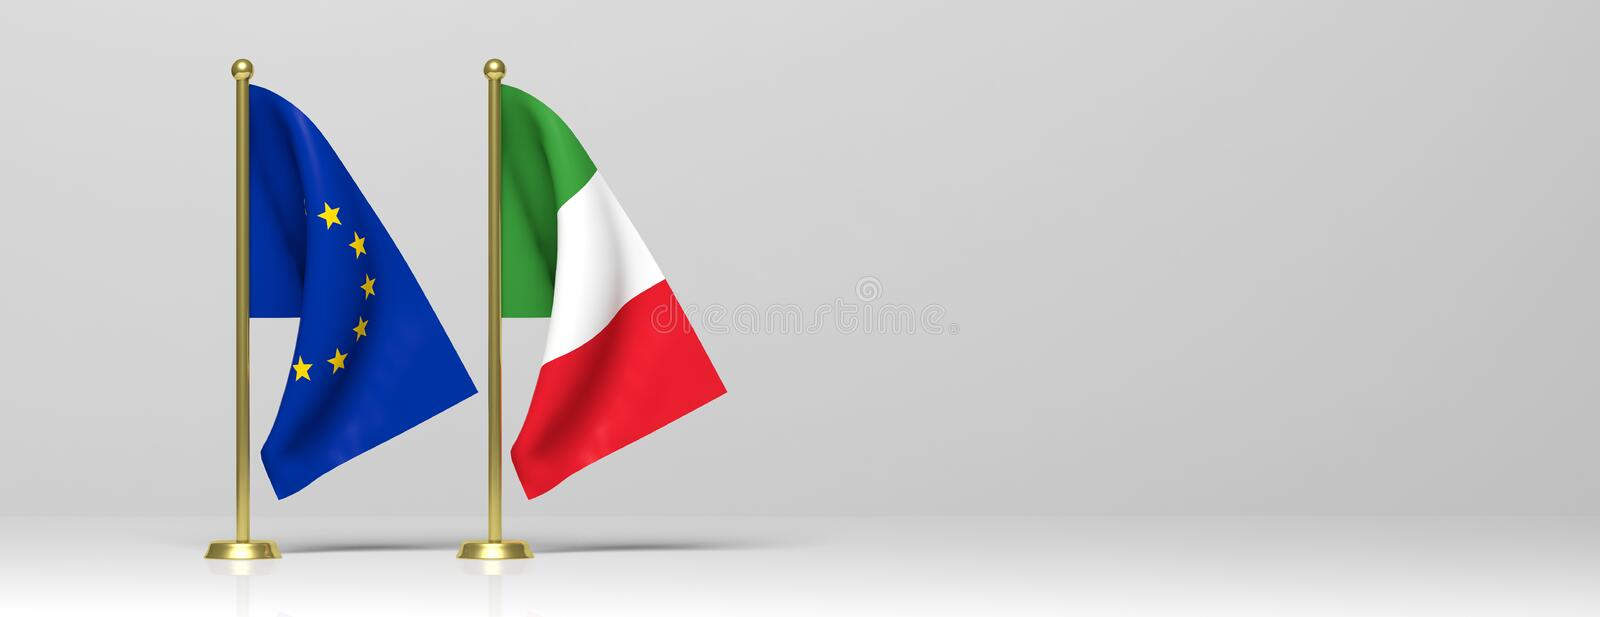 Italy and European Union miniature flags on white background, banner, copy space. 3d illustration. Italy and EU relations, Italexit concept. Italy and European royalty free illustration